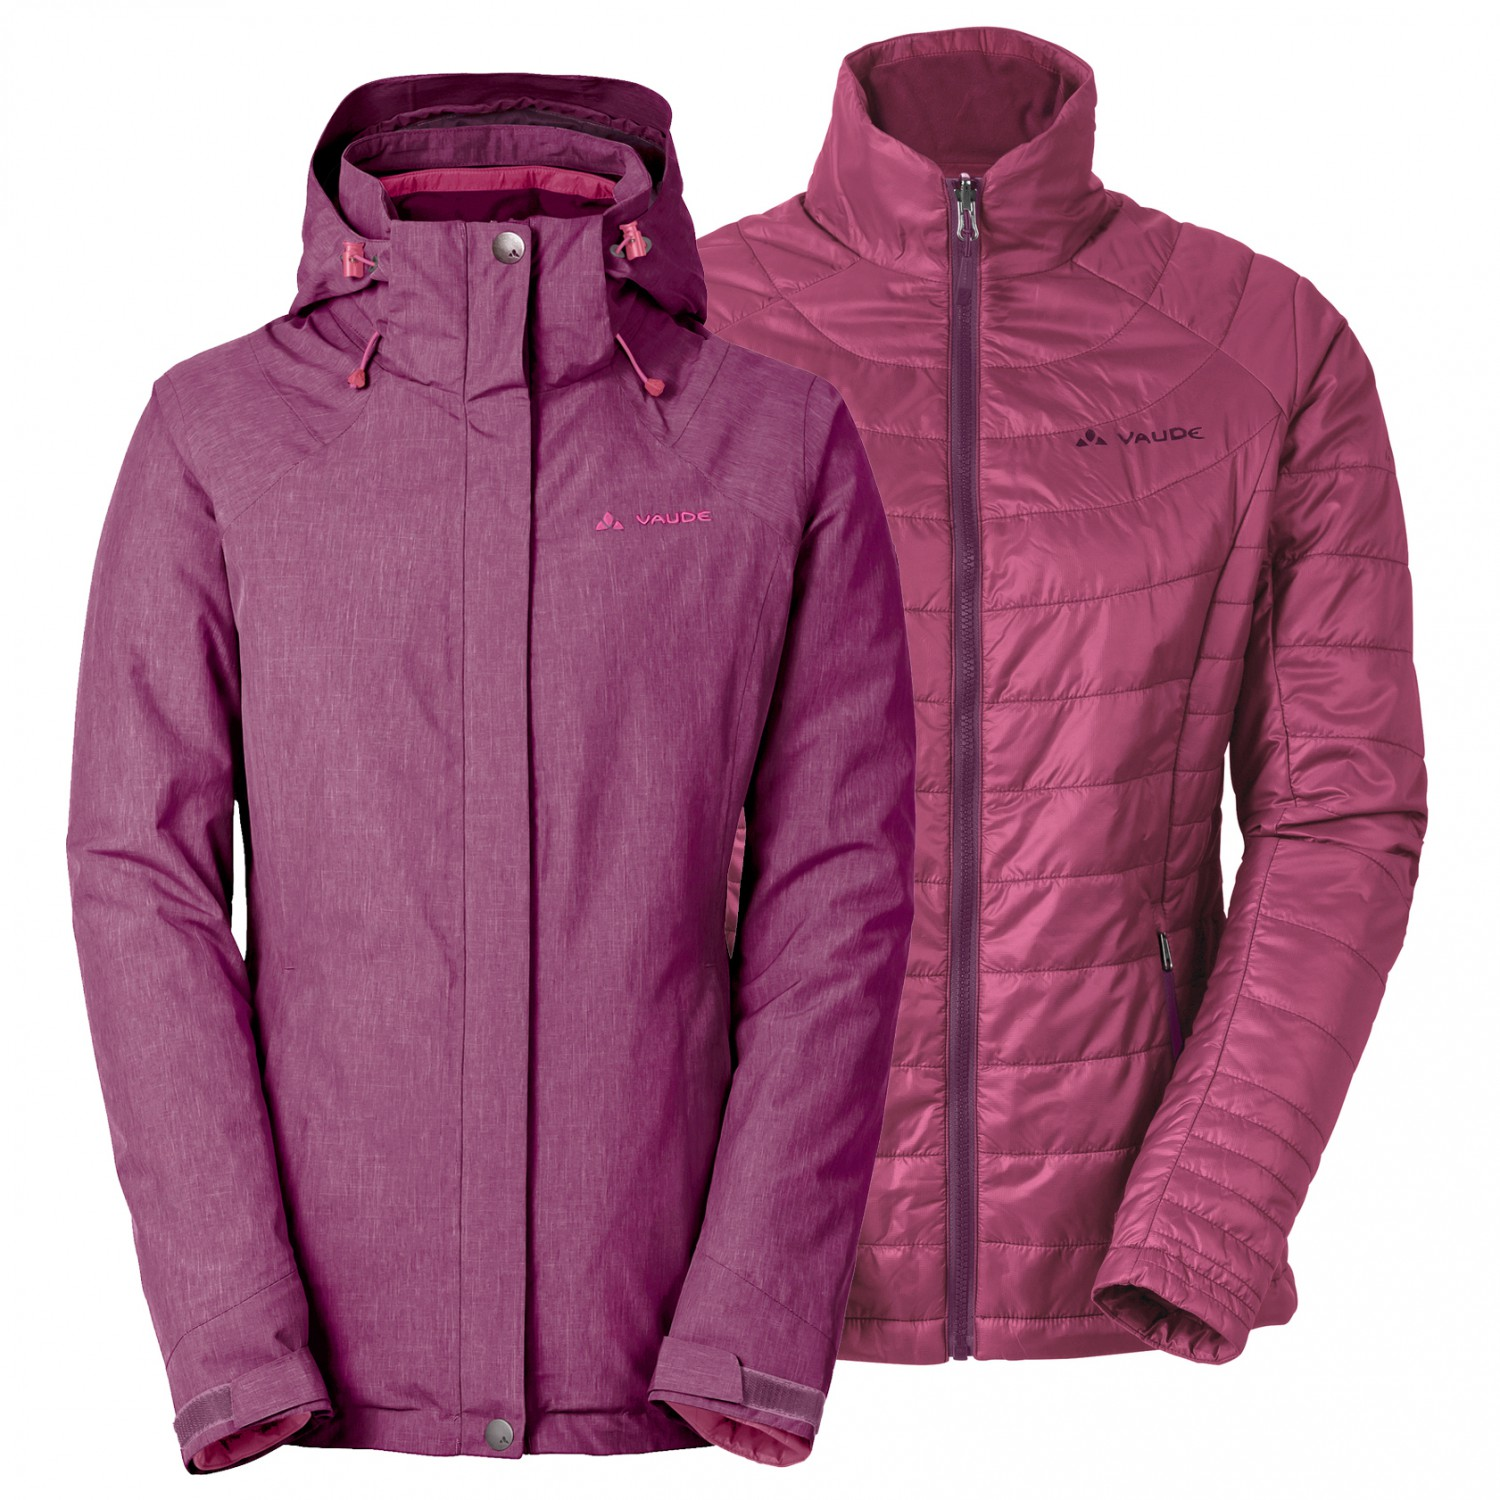 innovative design 38ddc 8a763 Vaude - Women's Caserina 3in1 Jacket - 3-in-1 jacket - Fuchsia | 34 (EU)